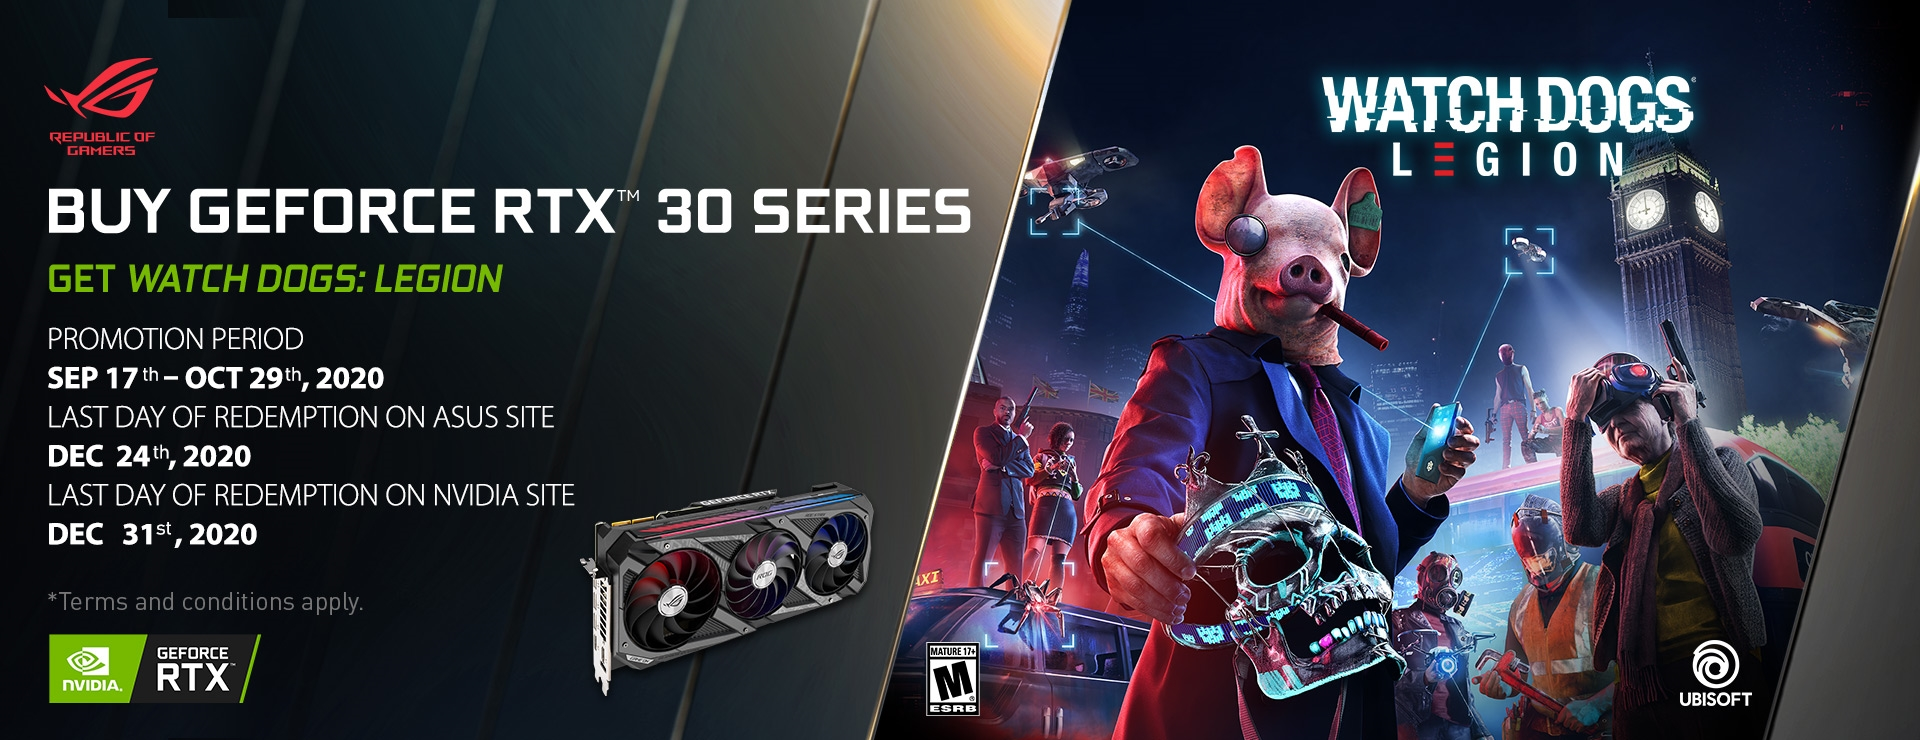 The RTX 30 Series and Watch Dogs